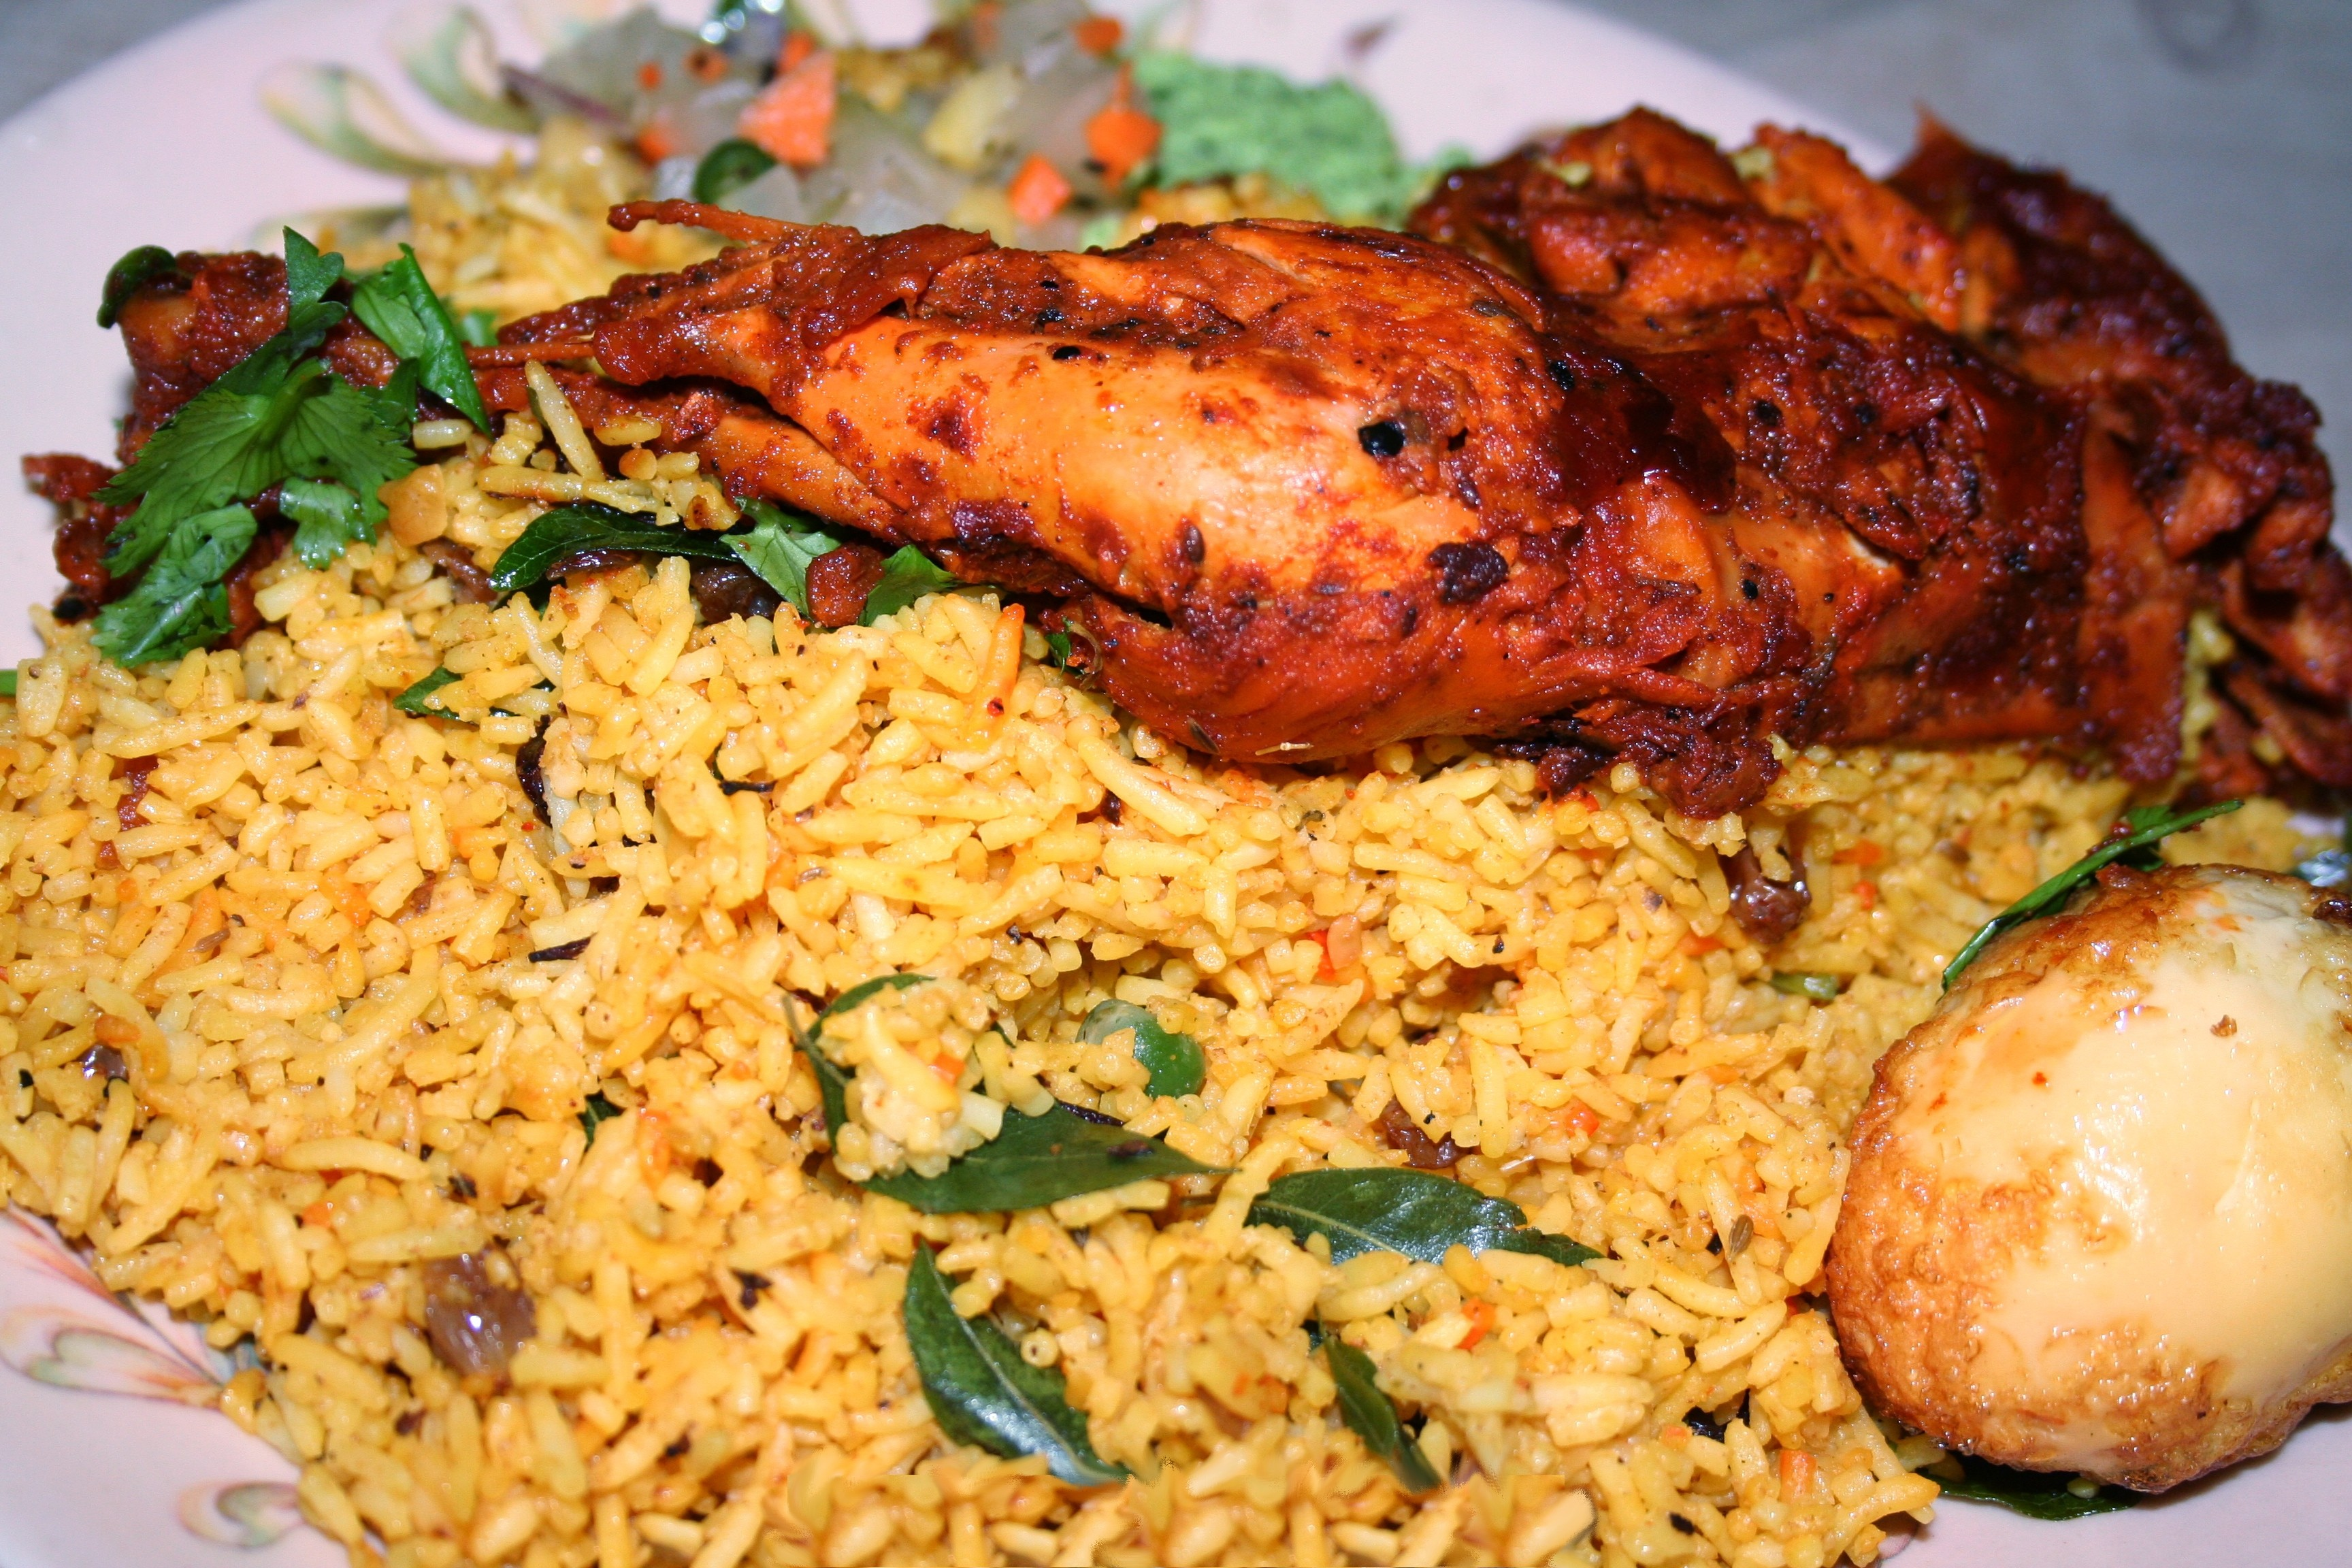 http://upload.wikimedia.org/wikipedia/commons/f/fe/Chicken_Biryani.jpg